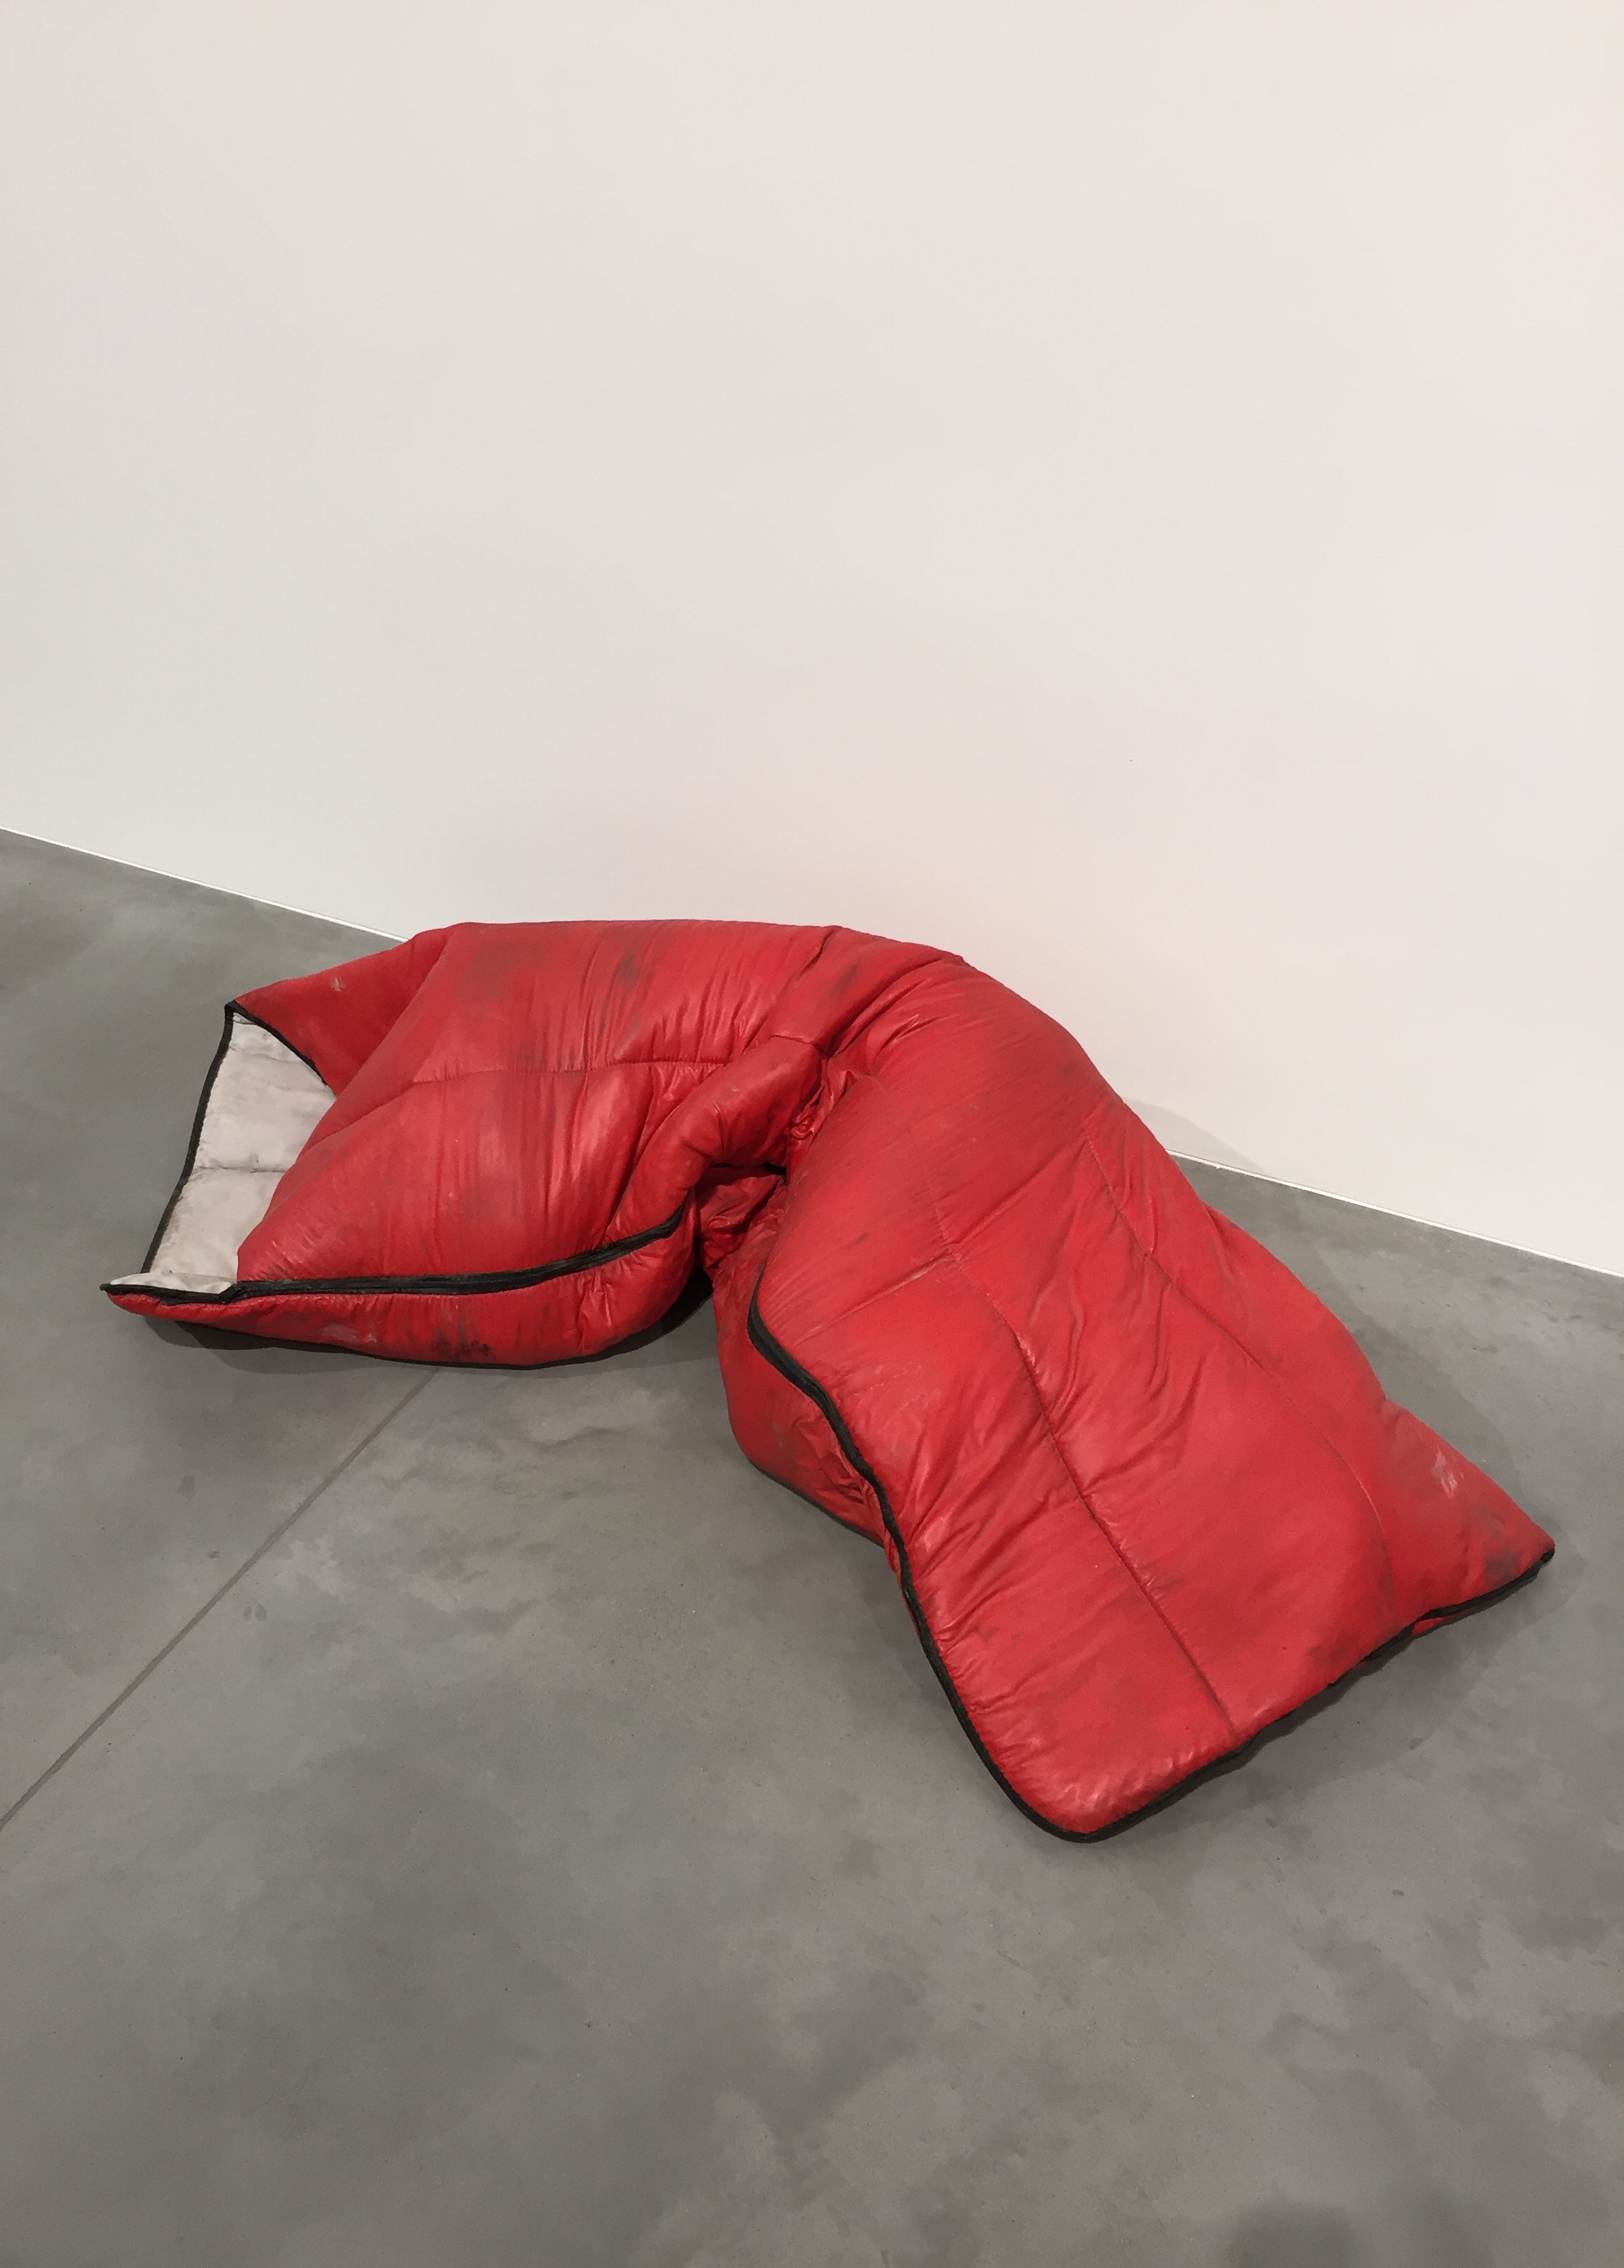 Gavin Turk sleeping bag at Newport Street Gallery - kenningtonrunoff.com